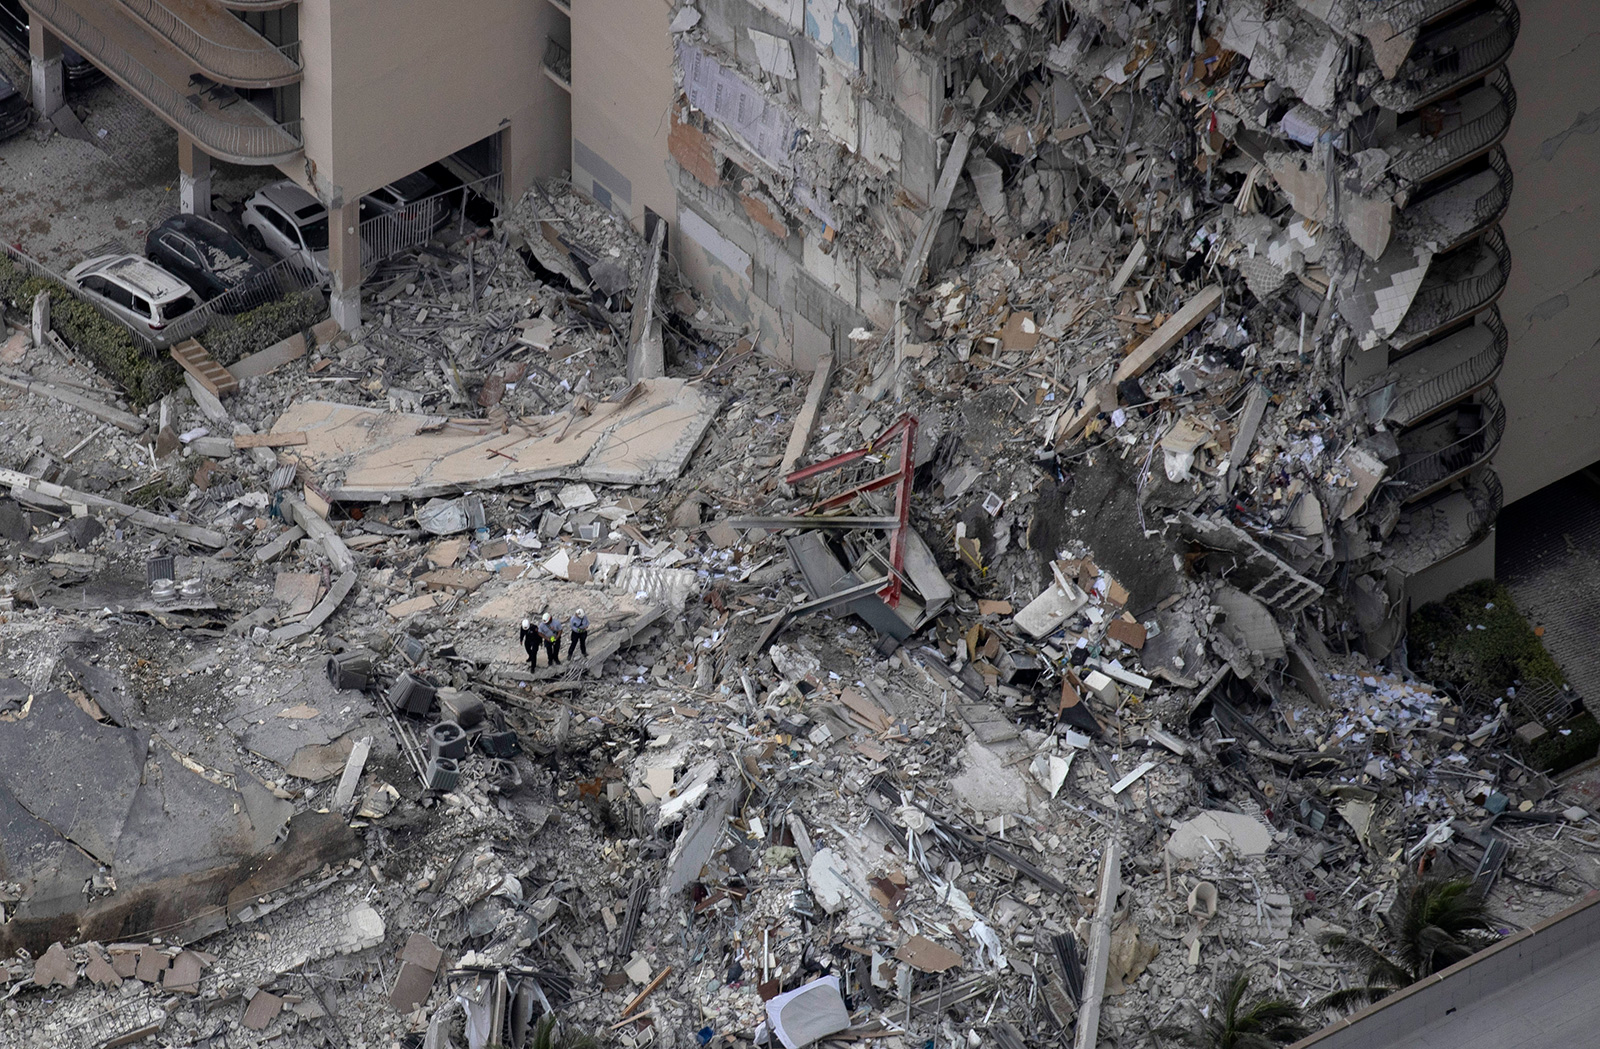 Search and rescue personnel with a K9 unit work in the rubble of a 12-story residential tower that partially collapsed on June 24, in Surfside, Florida.